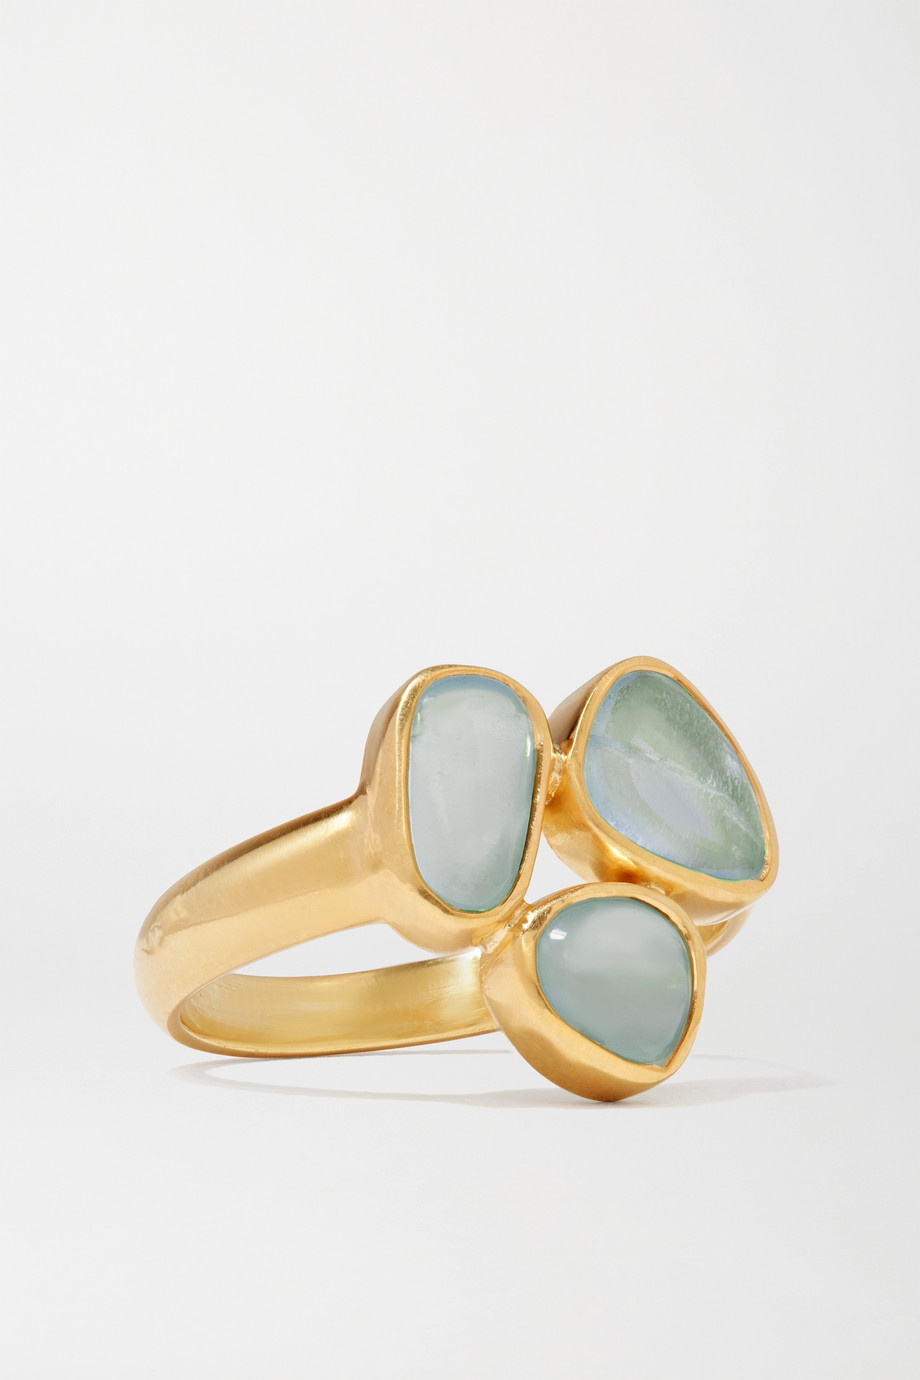 Pippa Small Ring aus 18 Karat Gold mit Aquamarinen